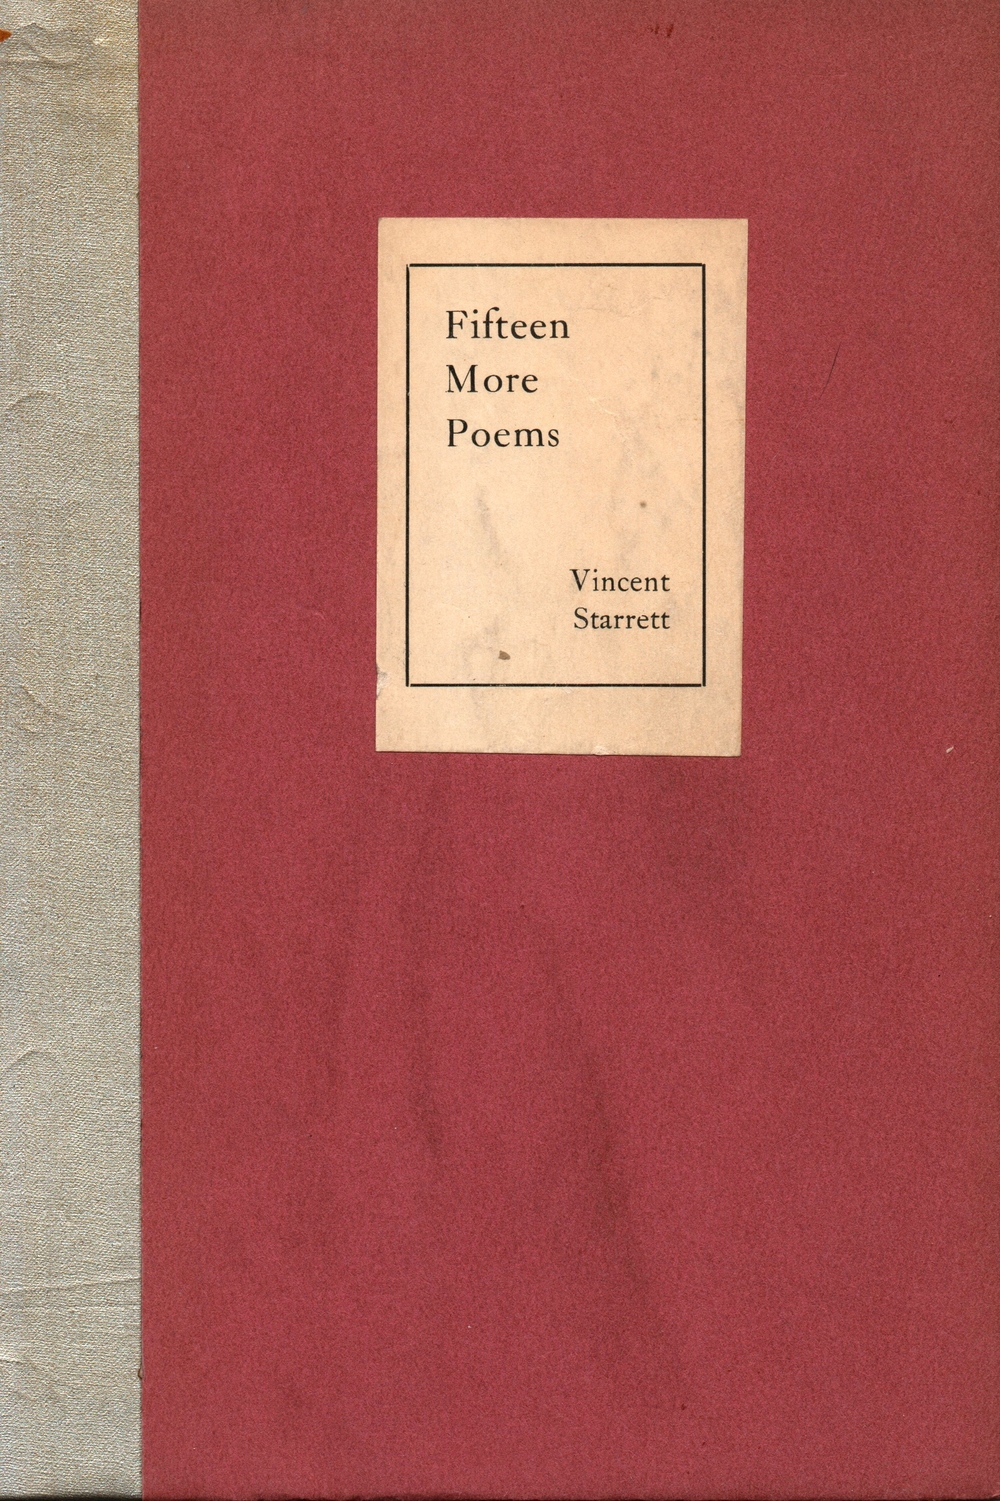 The stiff boards cover of Starrett's 1927 pamphlet of poems.